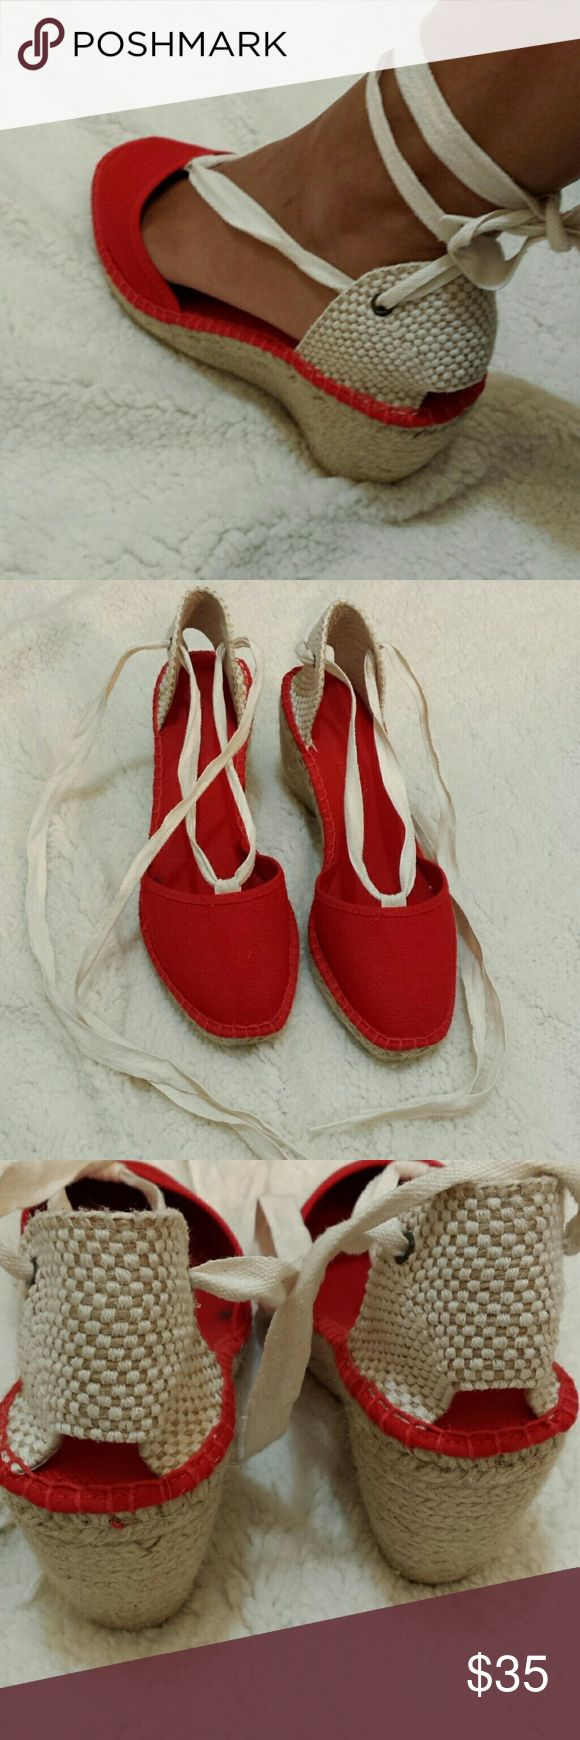 "Sale now Red Espadrilles String wraps around ankle, made in Spain, not sure of brand, straw heel, 3"" Shoes Espadrilles"